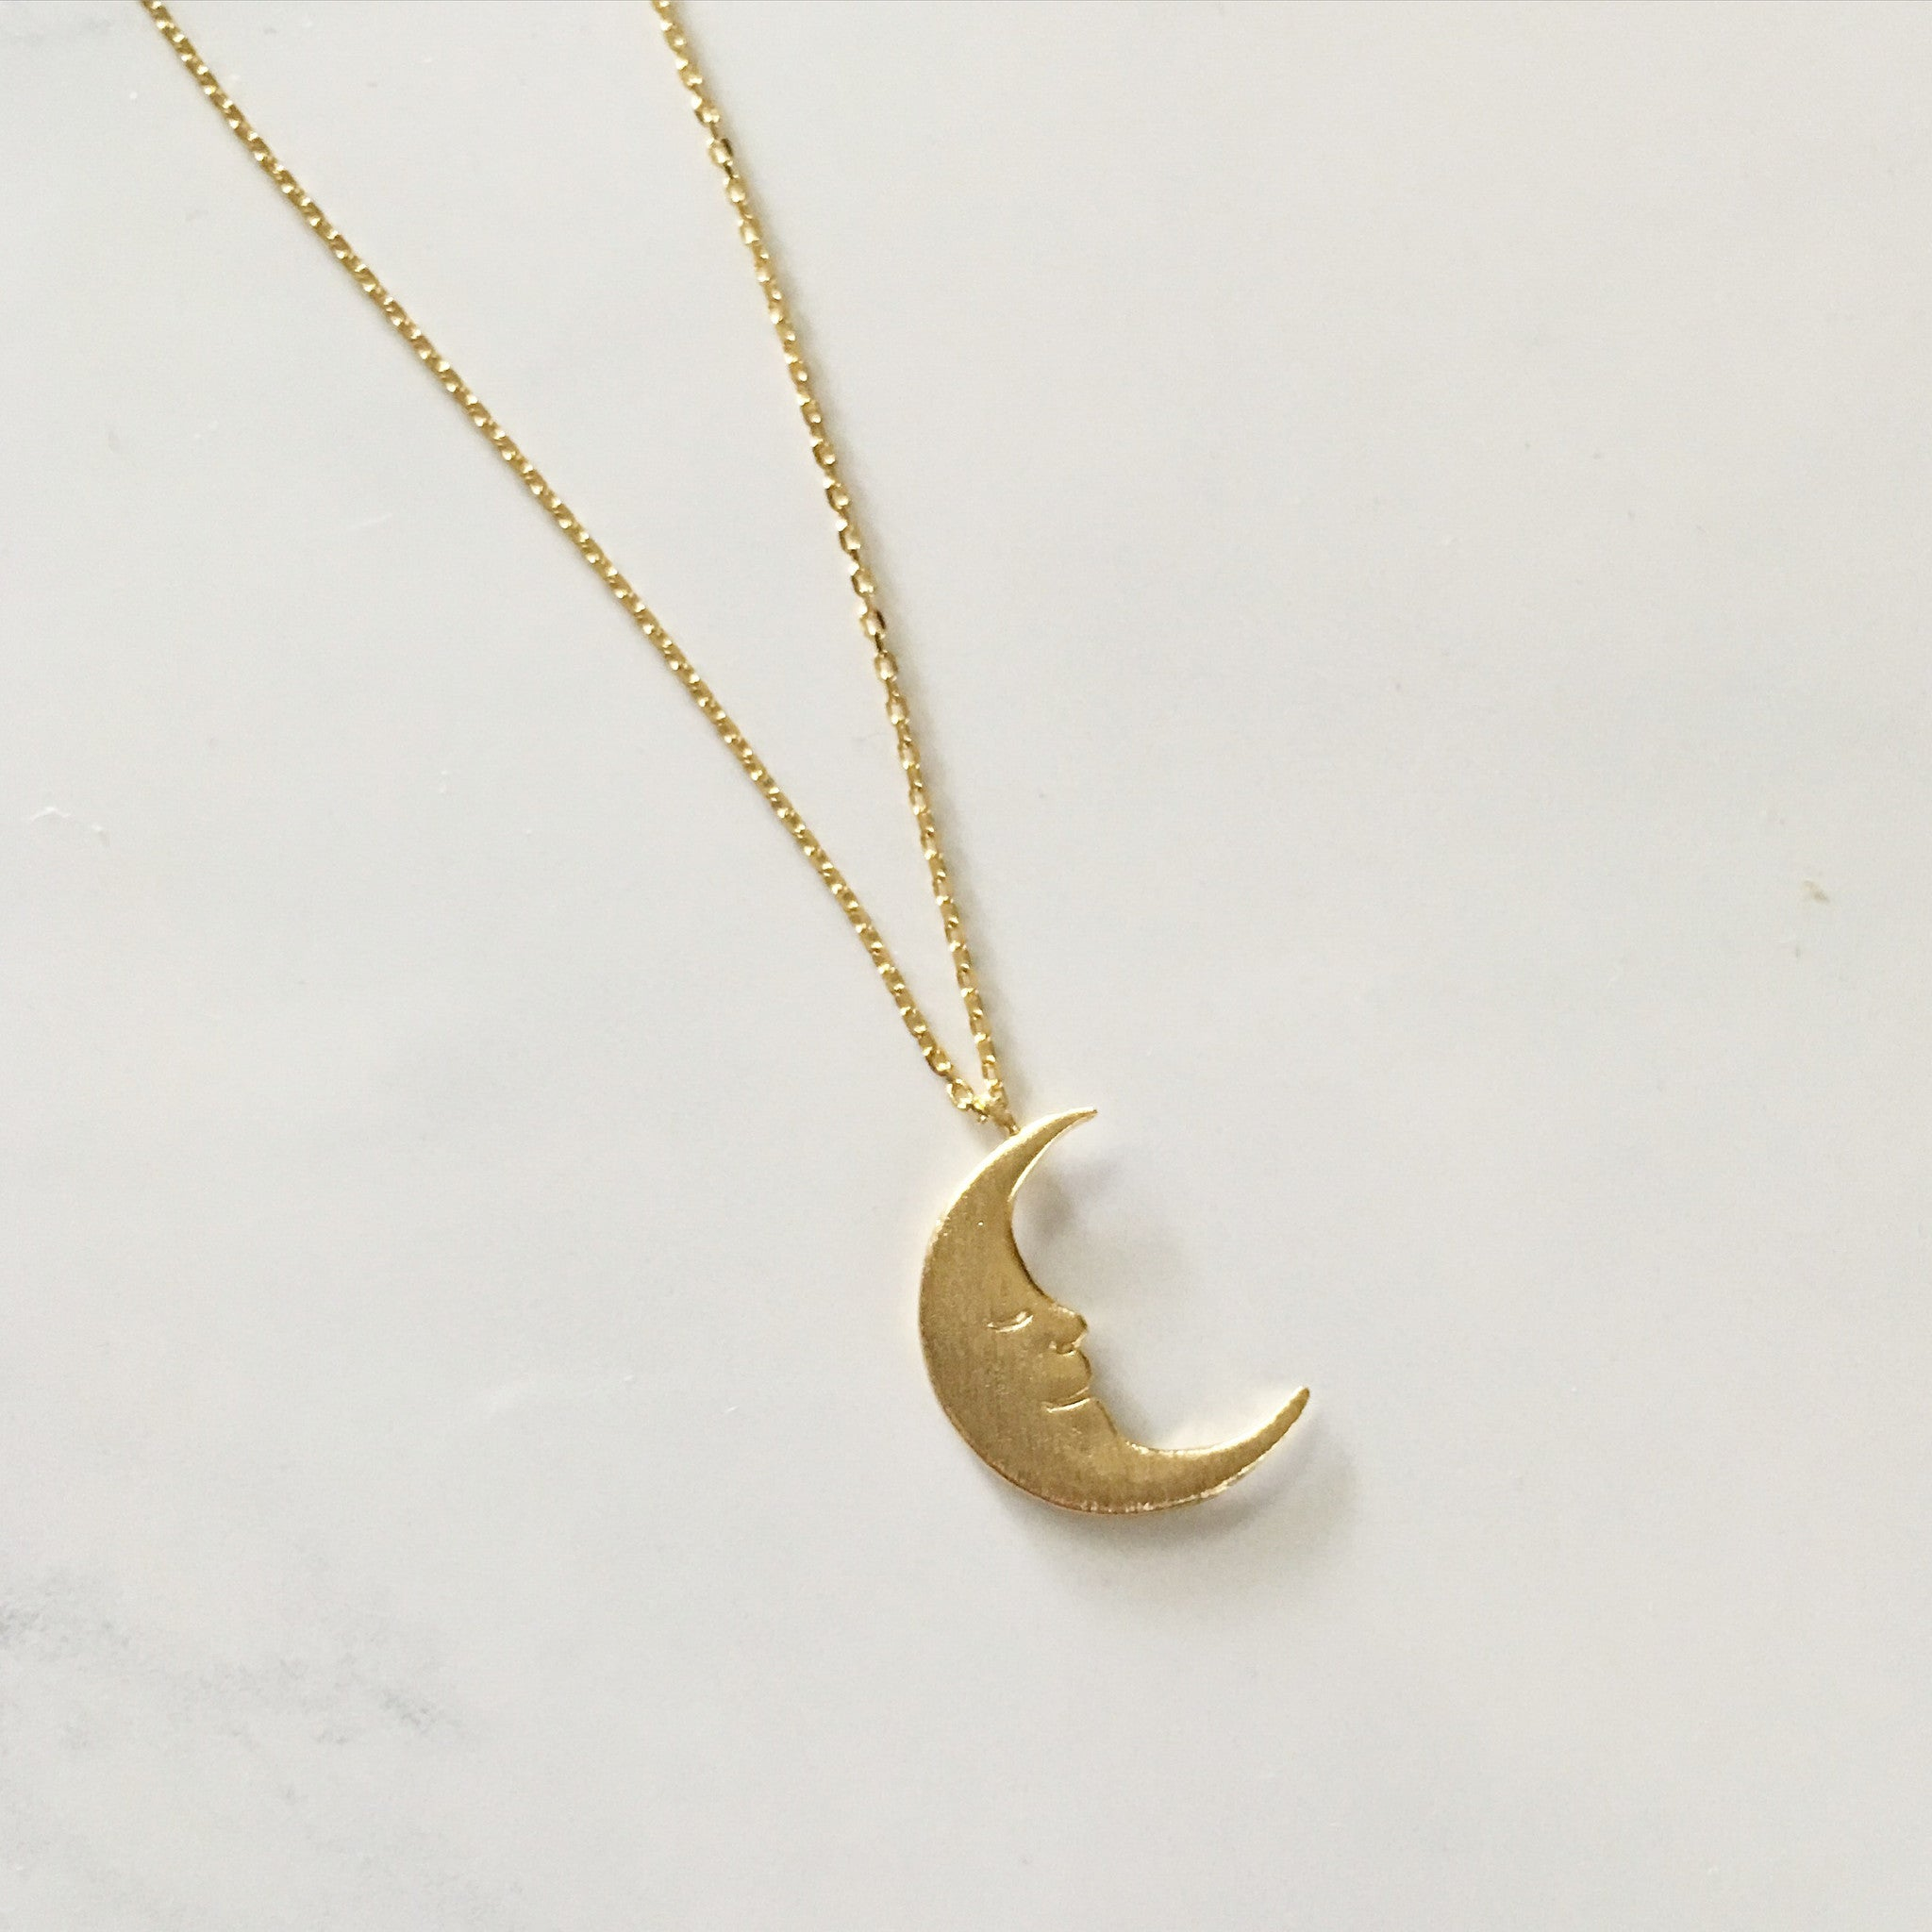 MOON FACE -Necklace